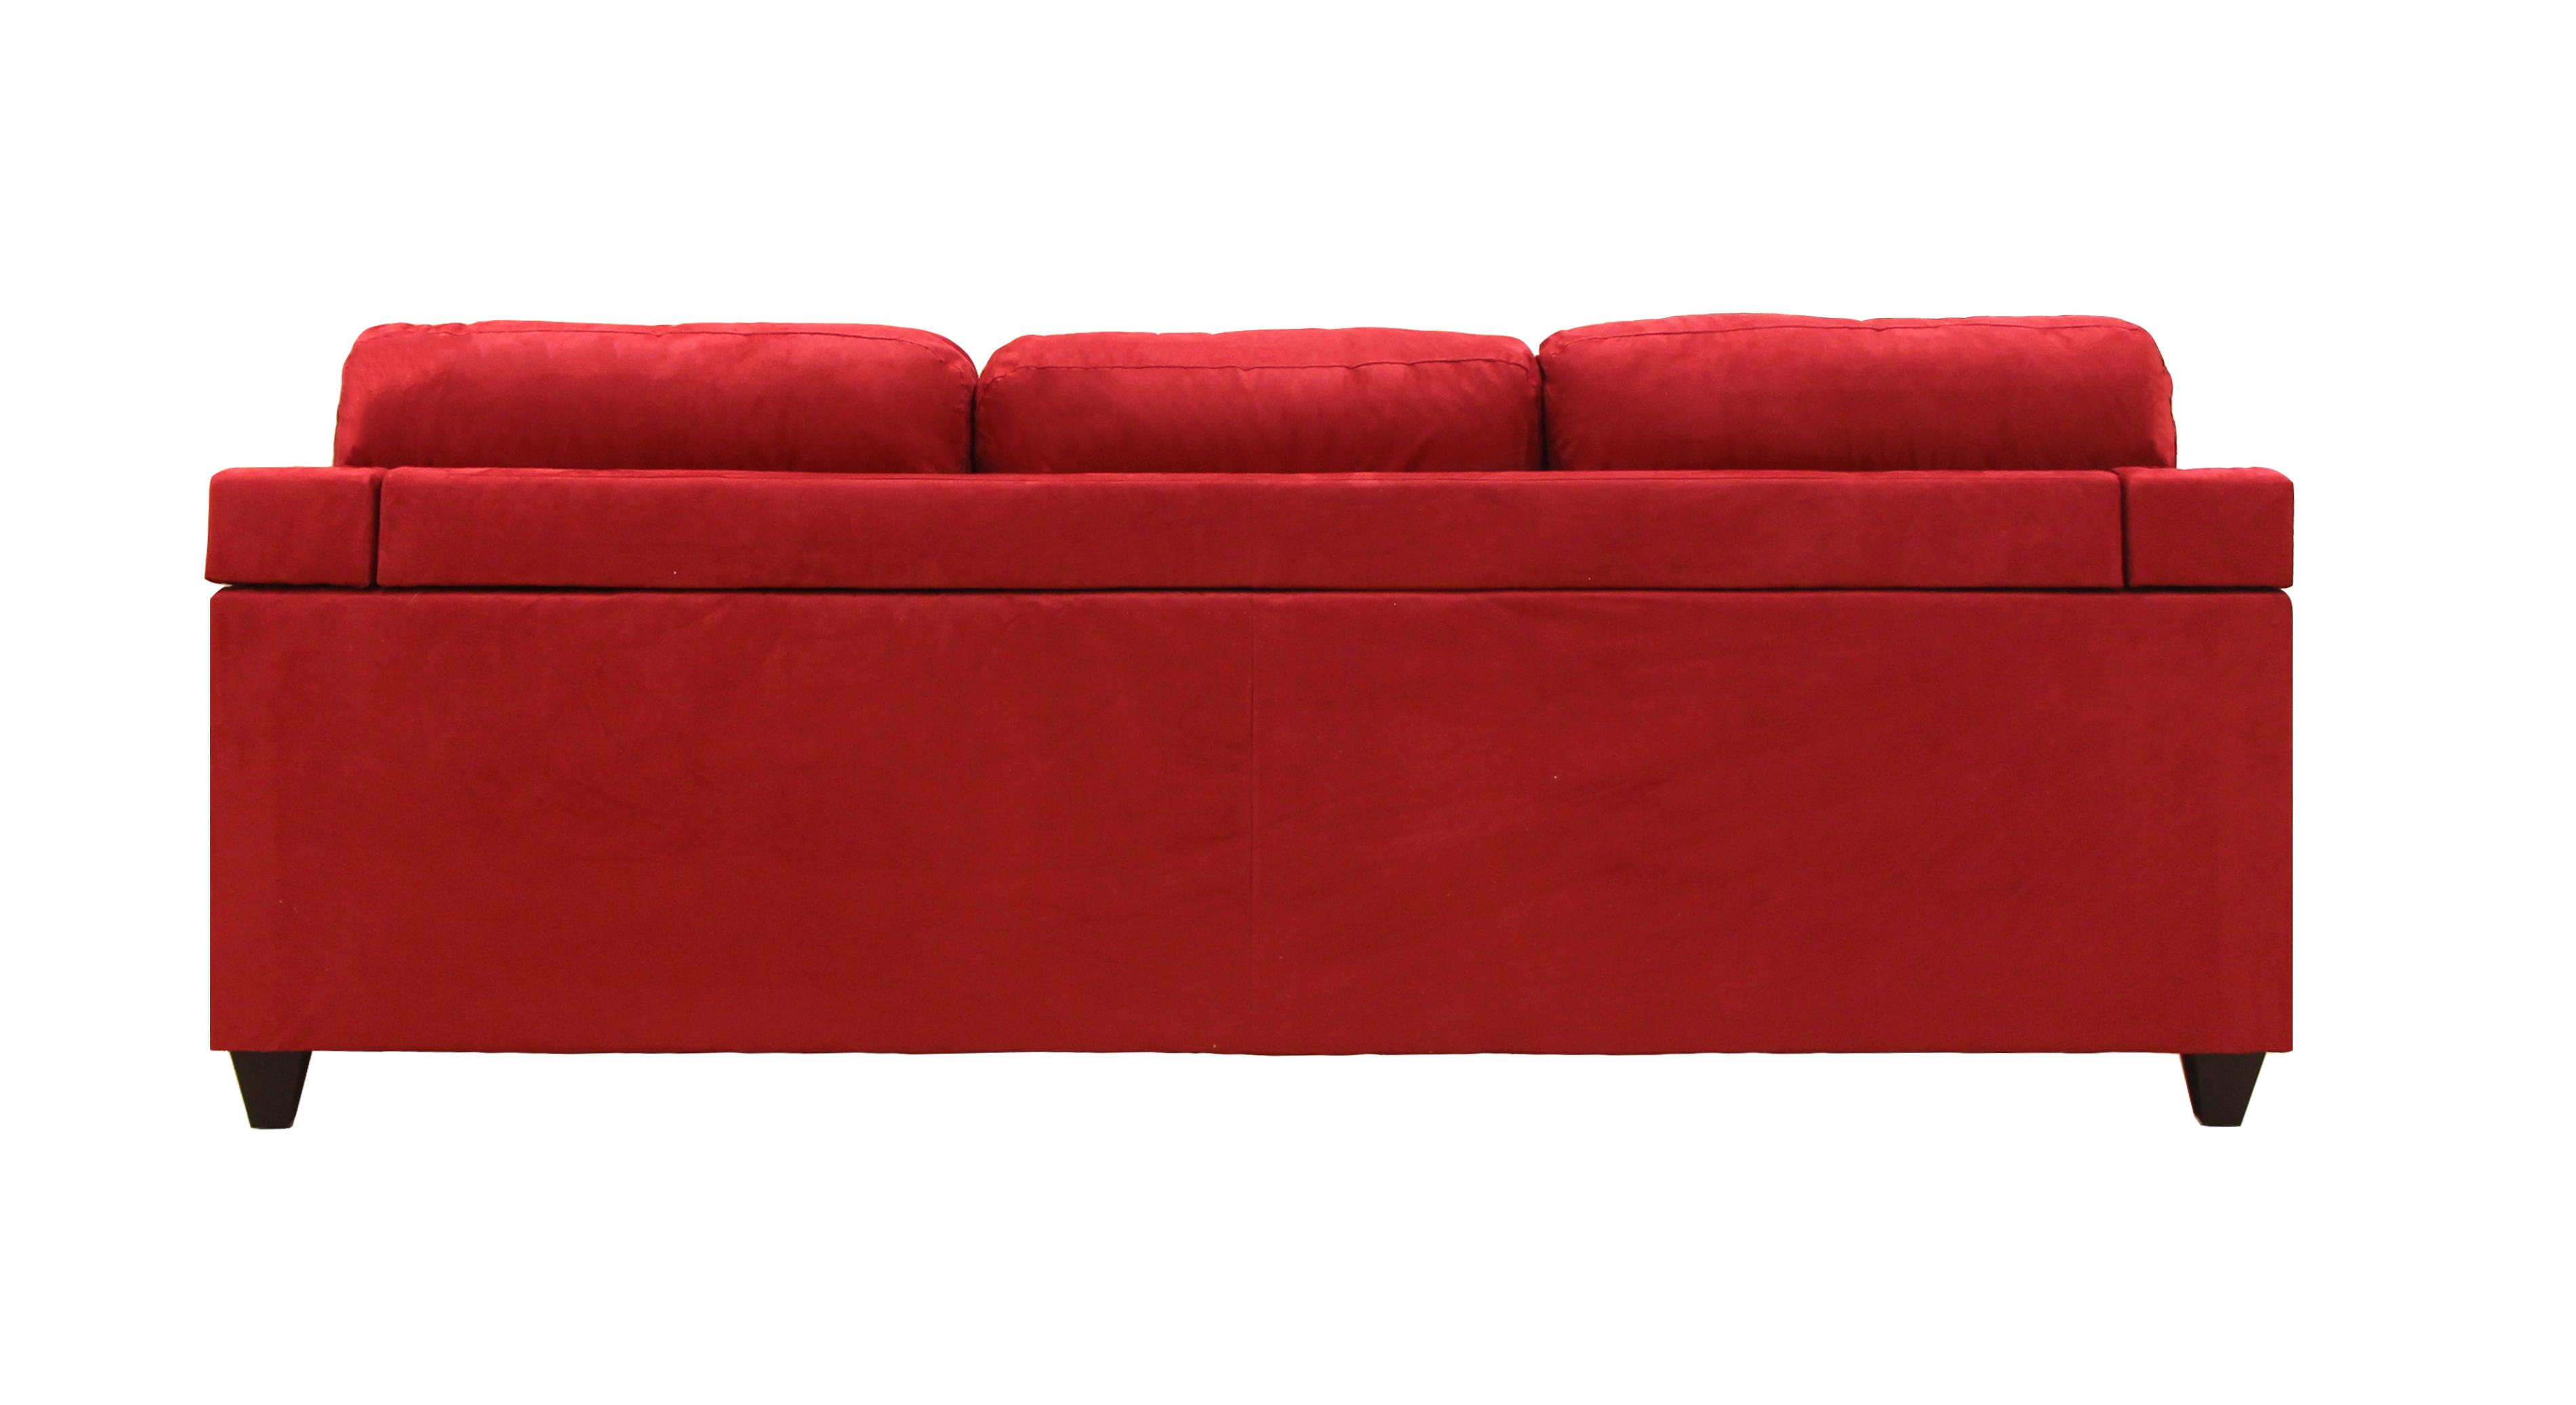 Outstanding Acme Furniture Vogue Red Reversible Chaise Sectional The Gmtry Best Dining Table And Chair Ideas Images Gmtryco